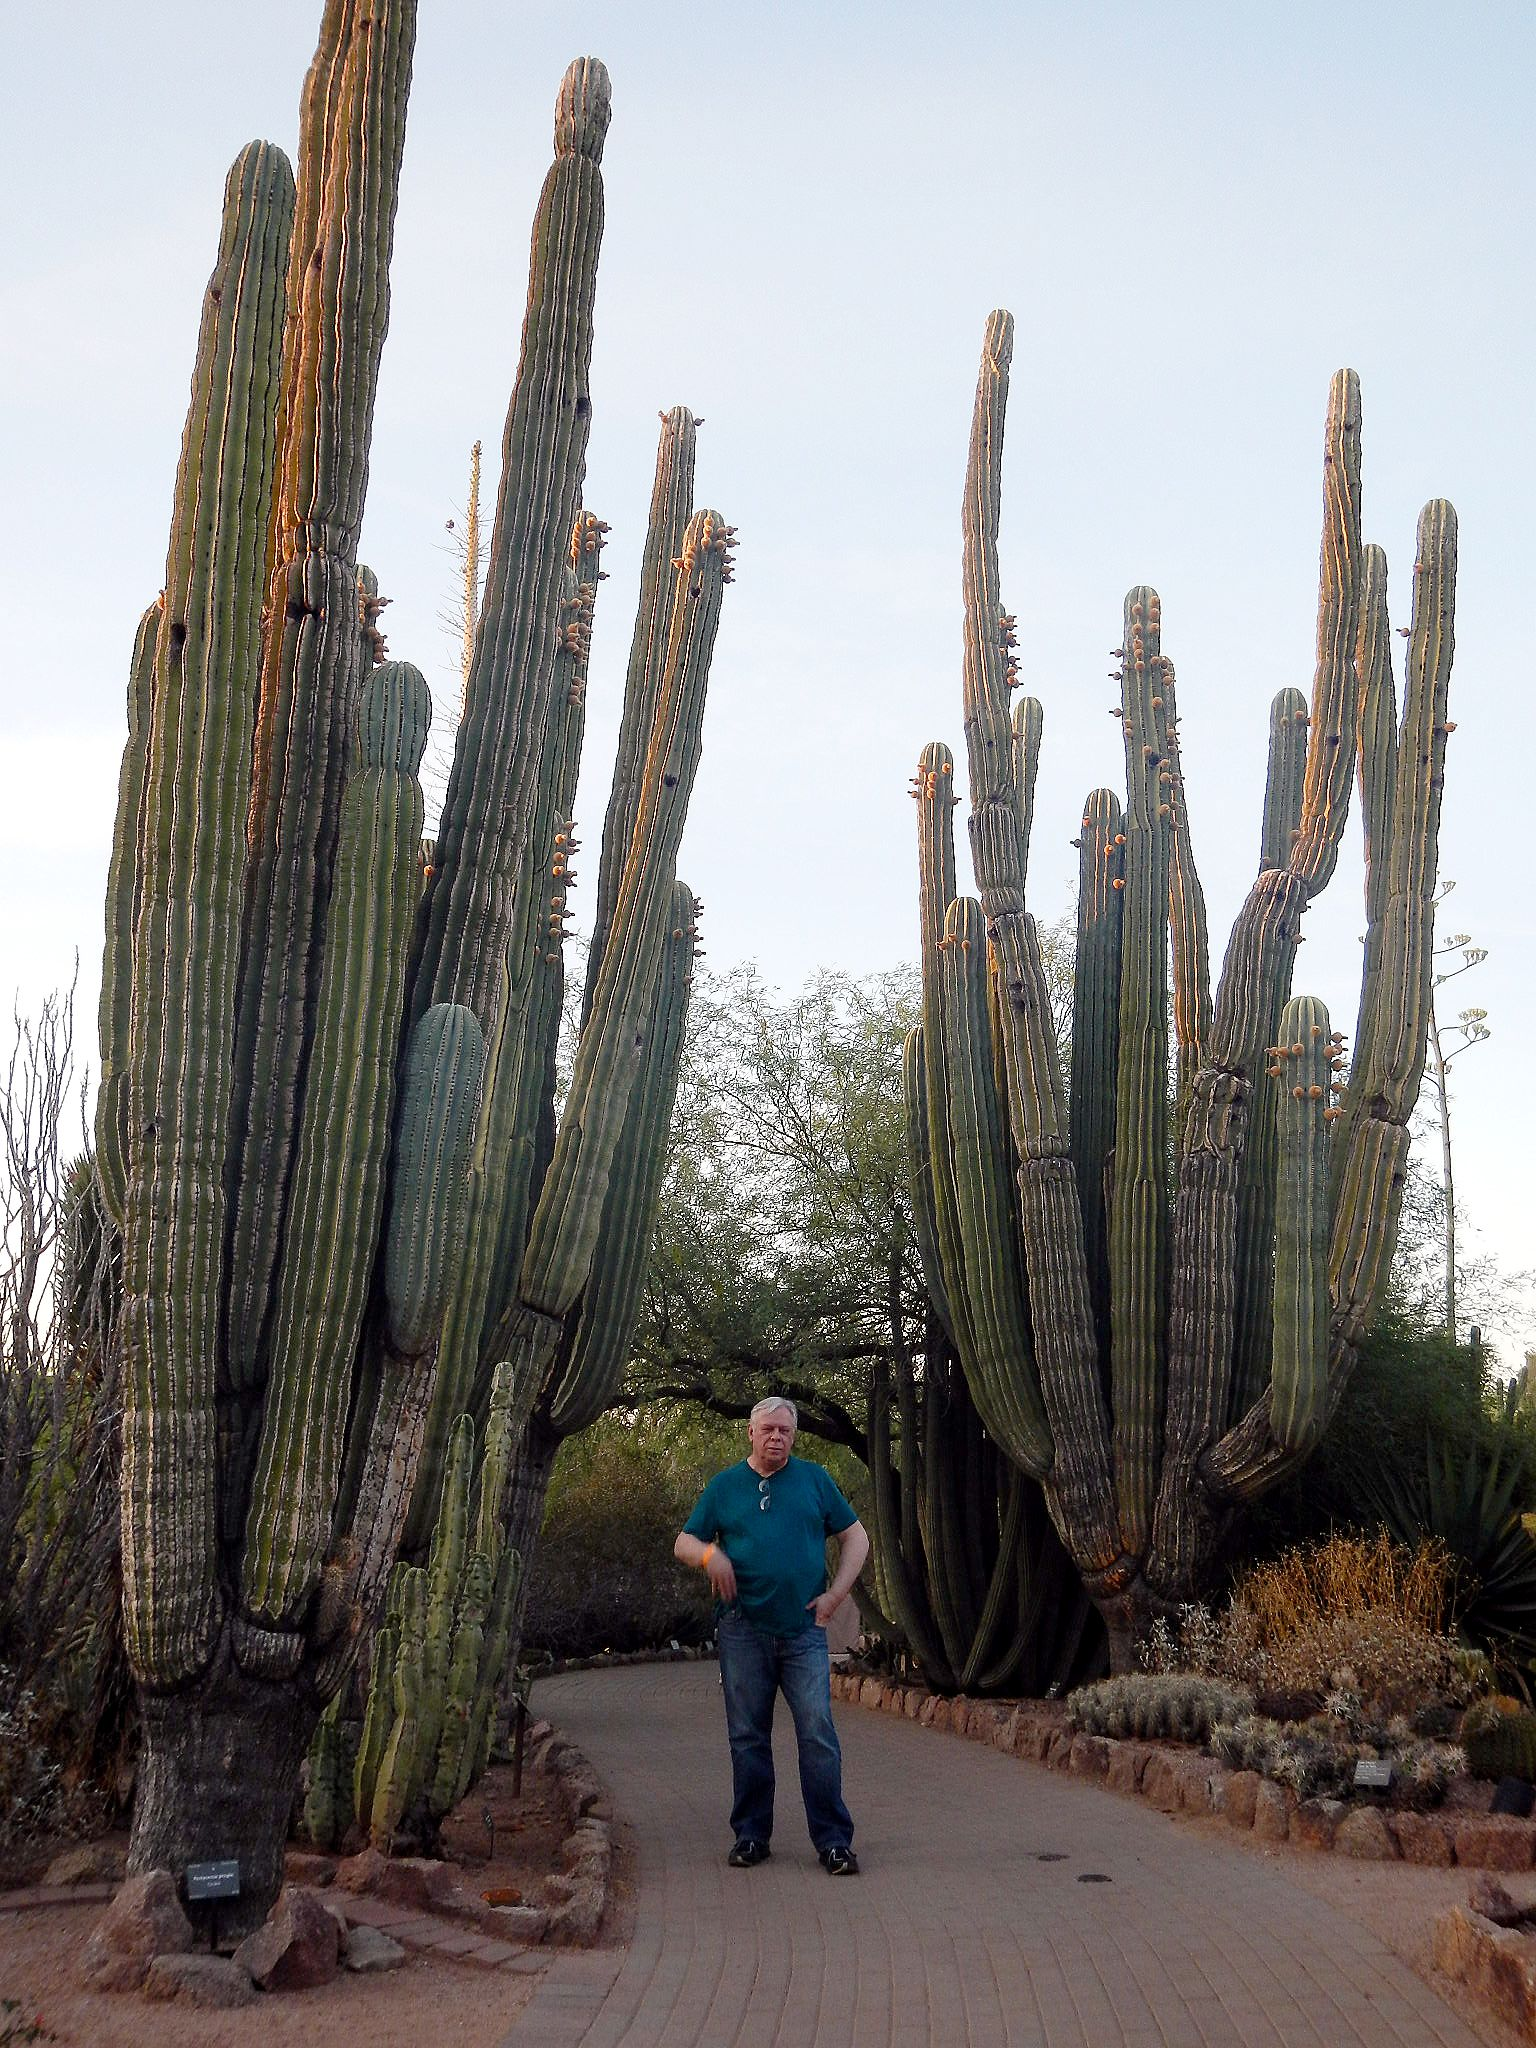 There Cactus Texas Are